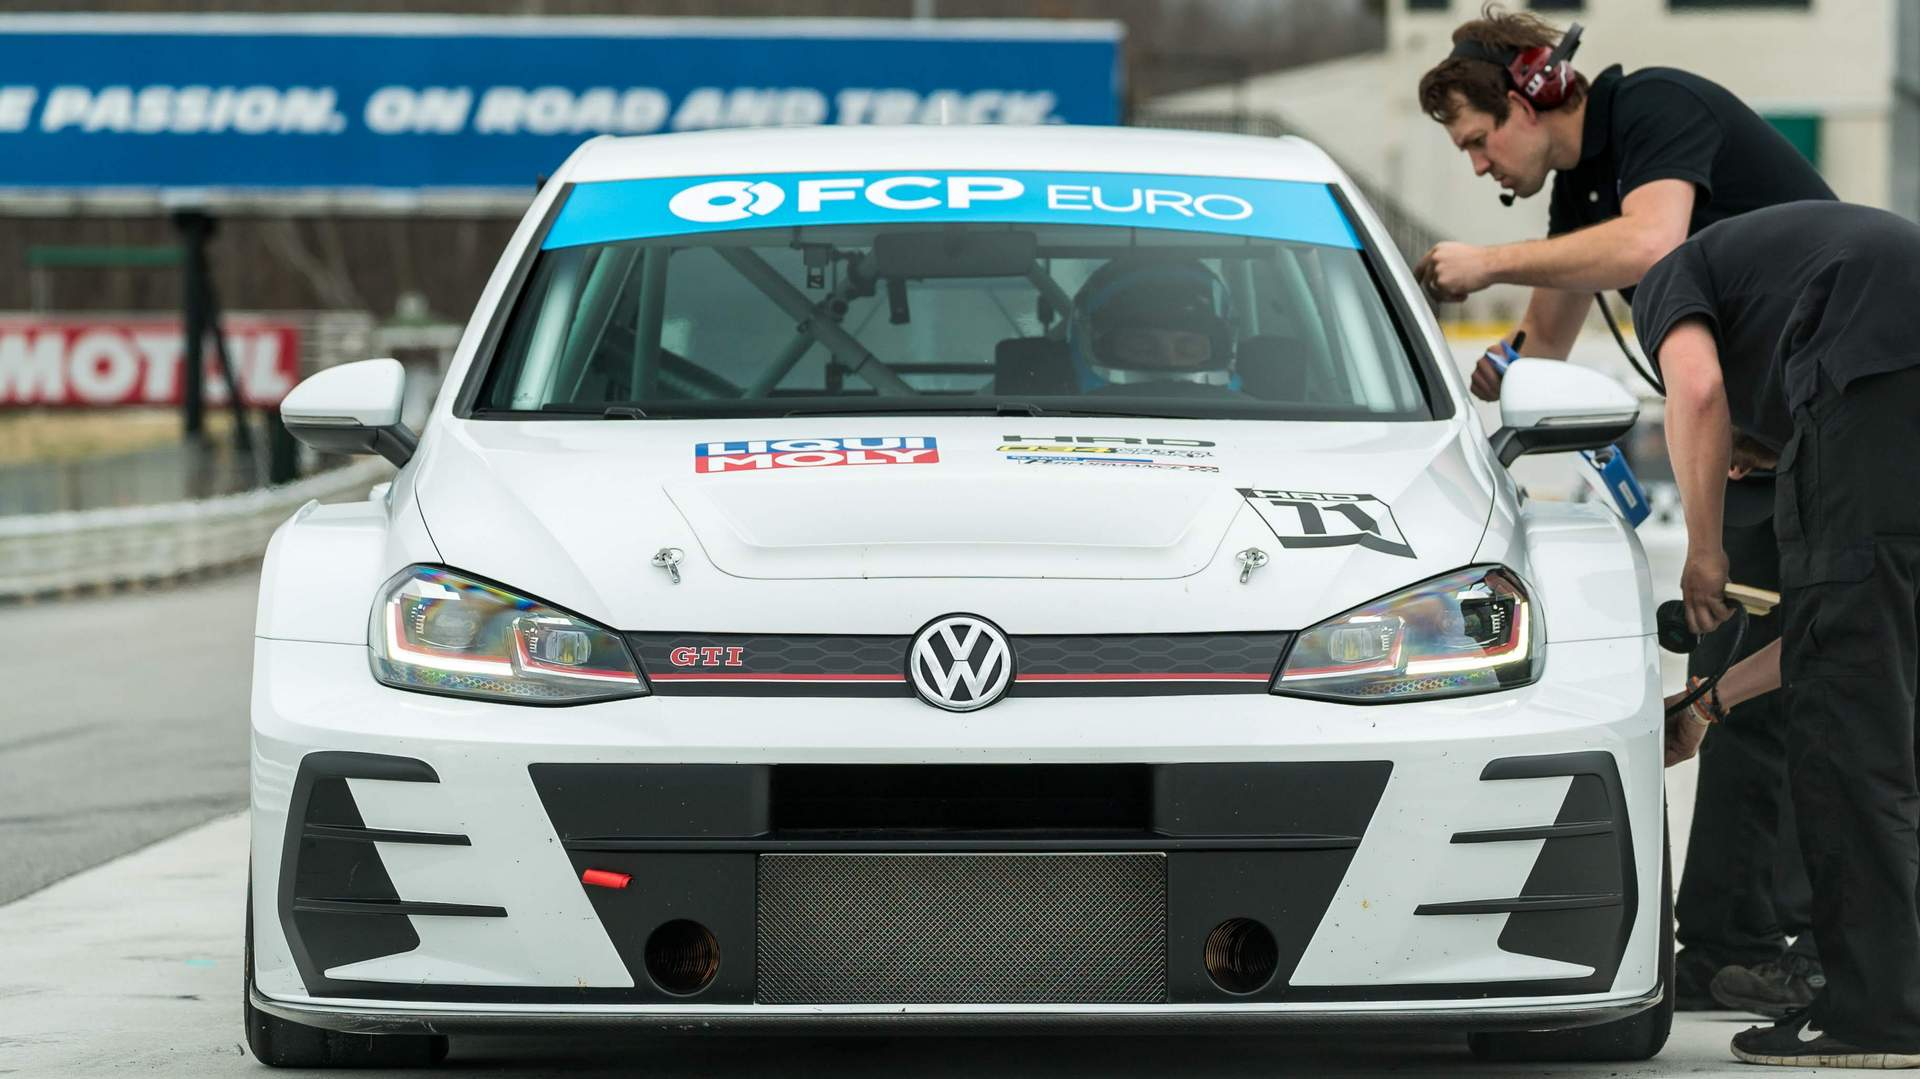 New TCR without livery